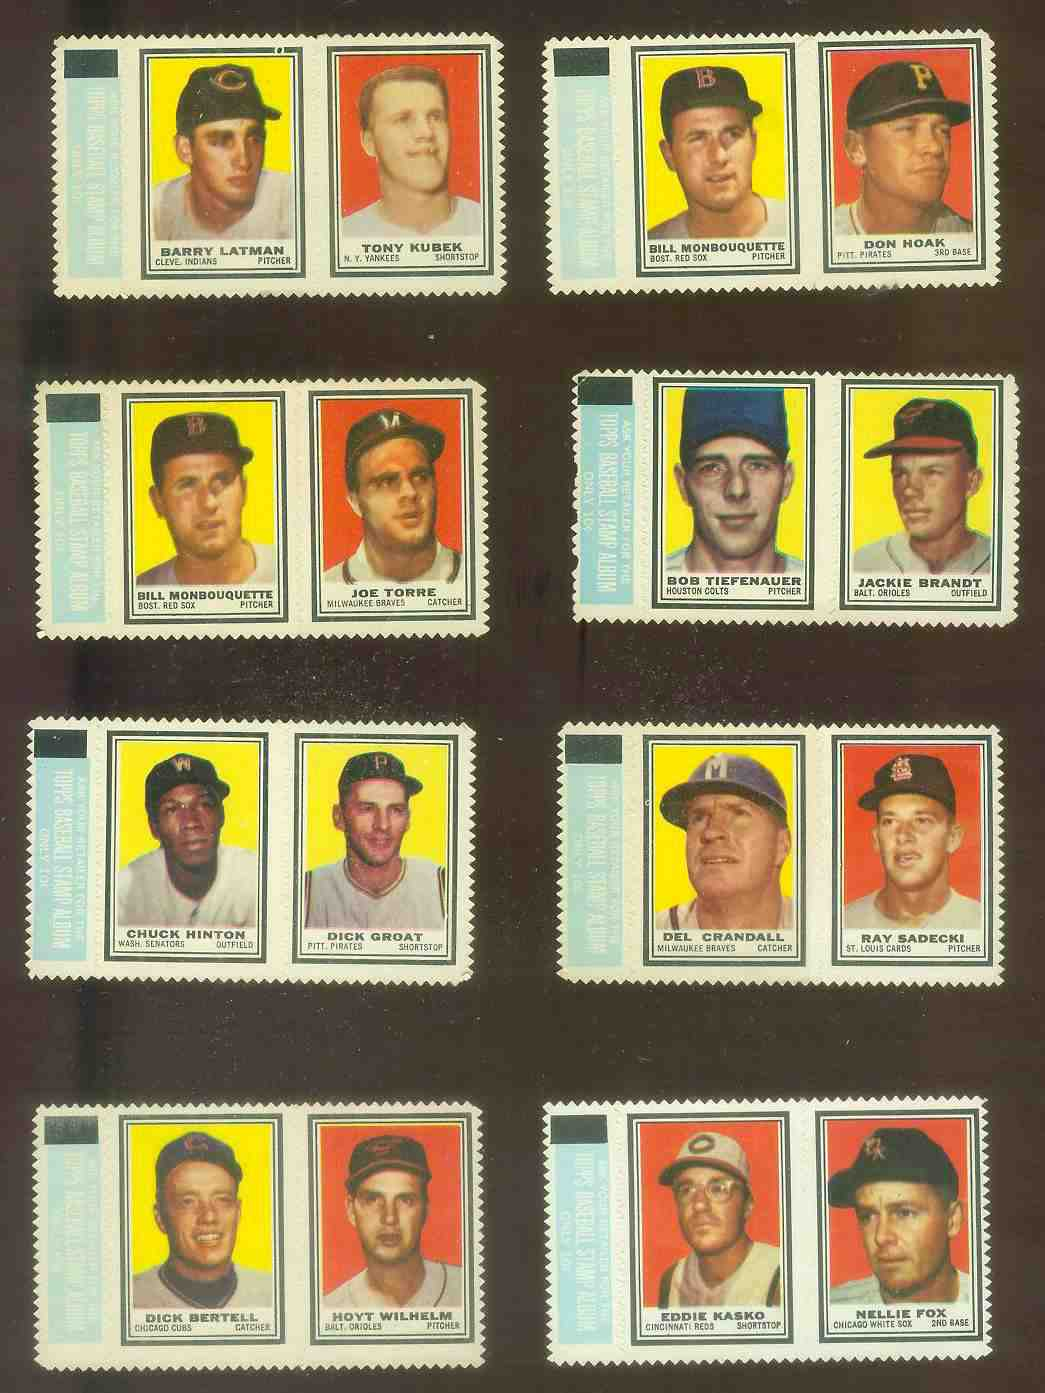 Bill Monbouquette/JOE TORRE ROOKIE - 1962 Topps STAMP PANEL with TAB !!! Baseball cards value